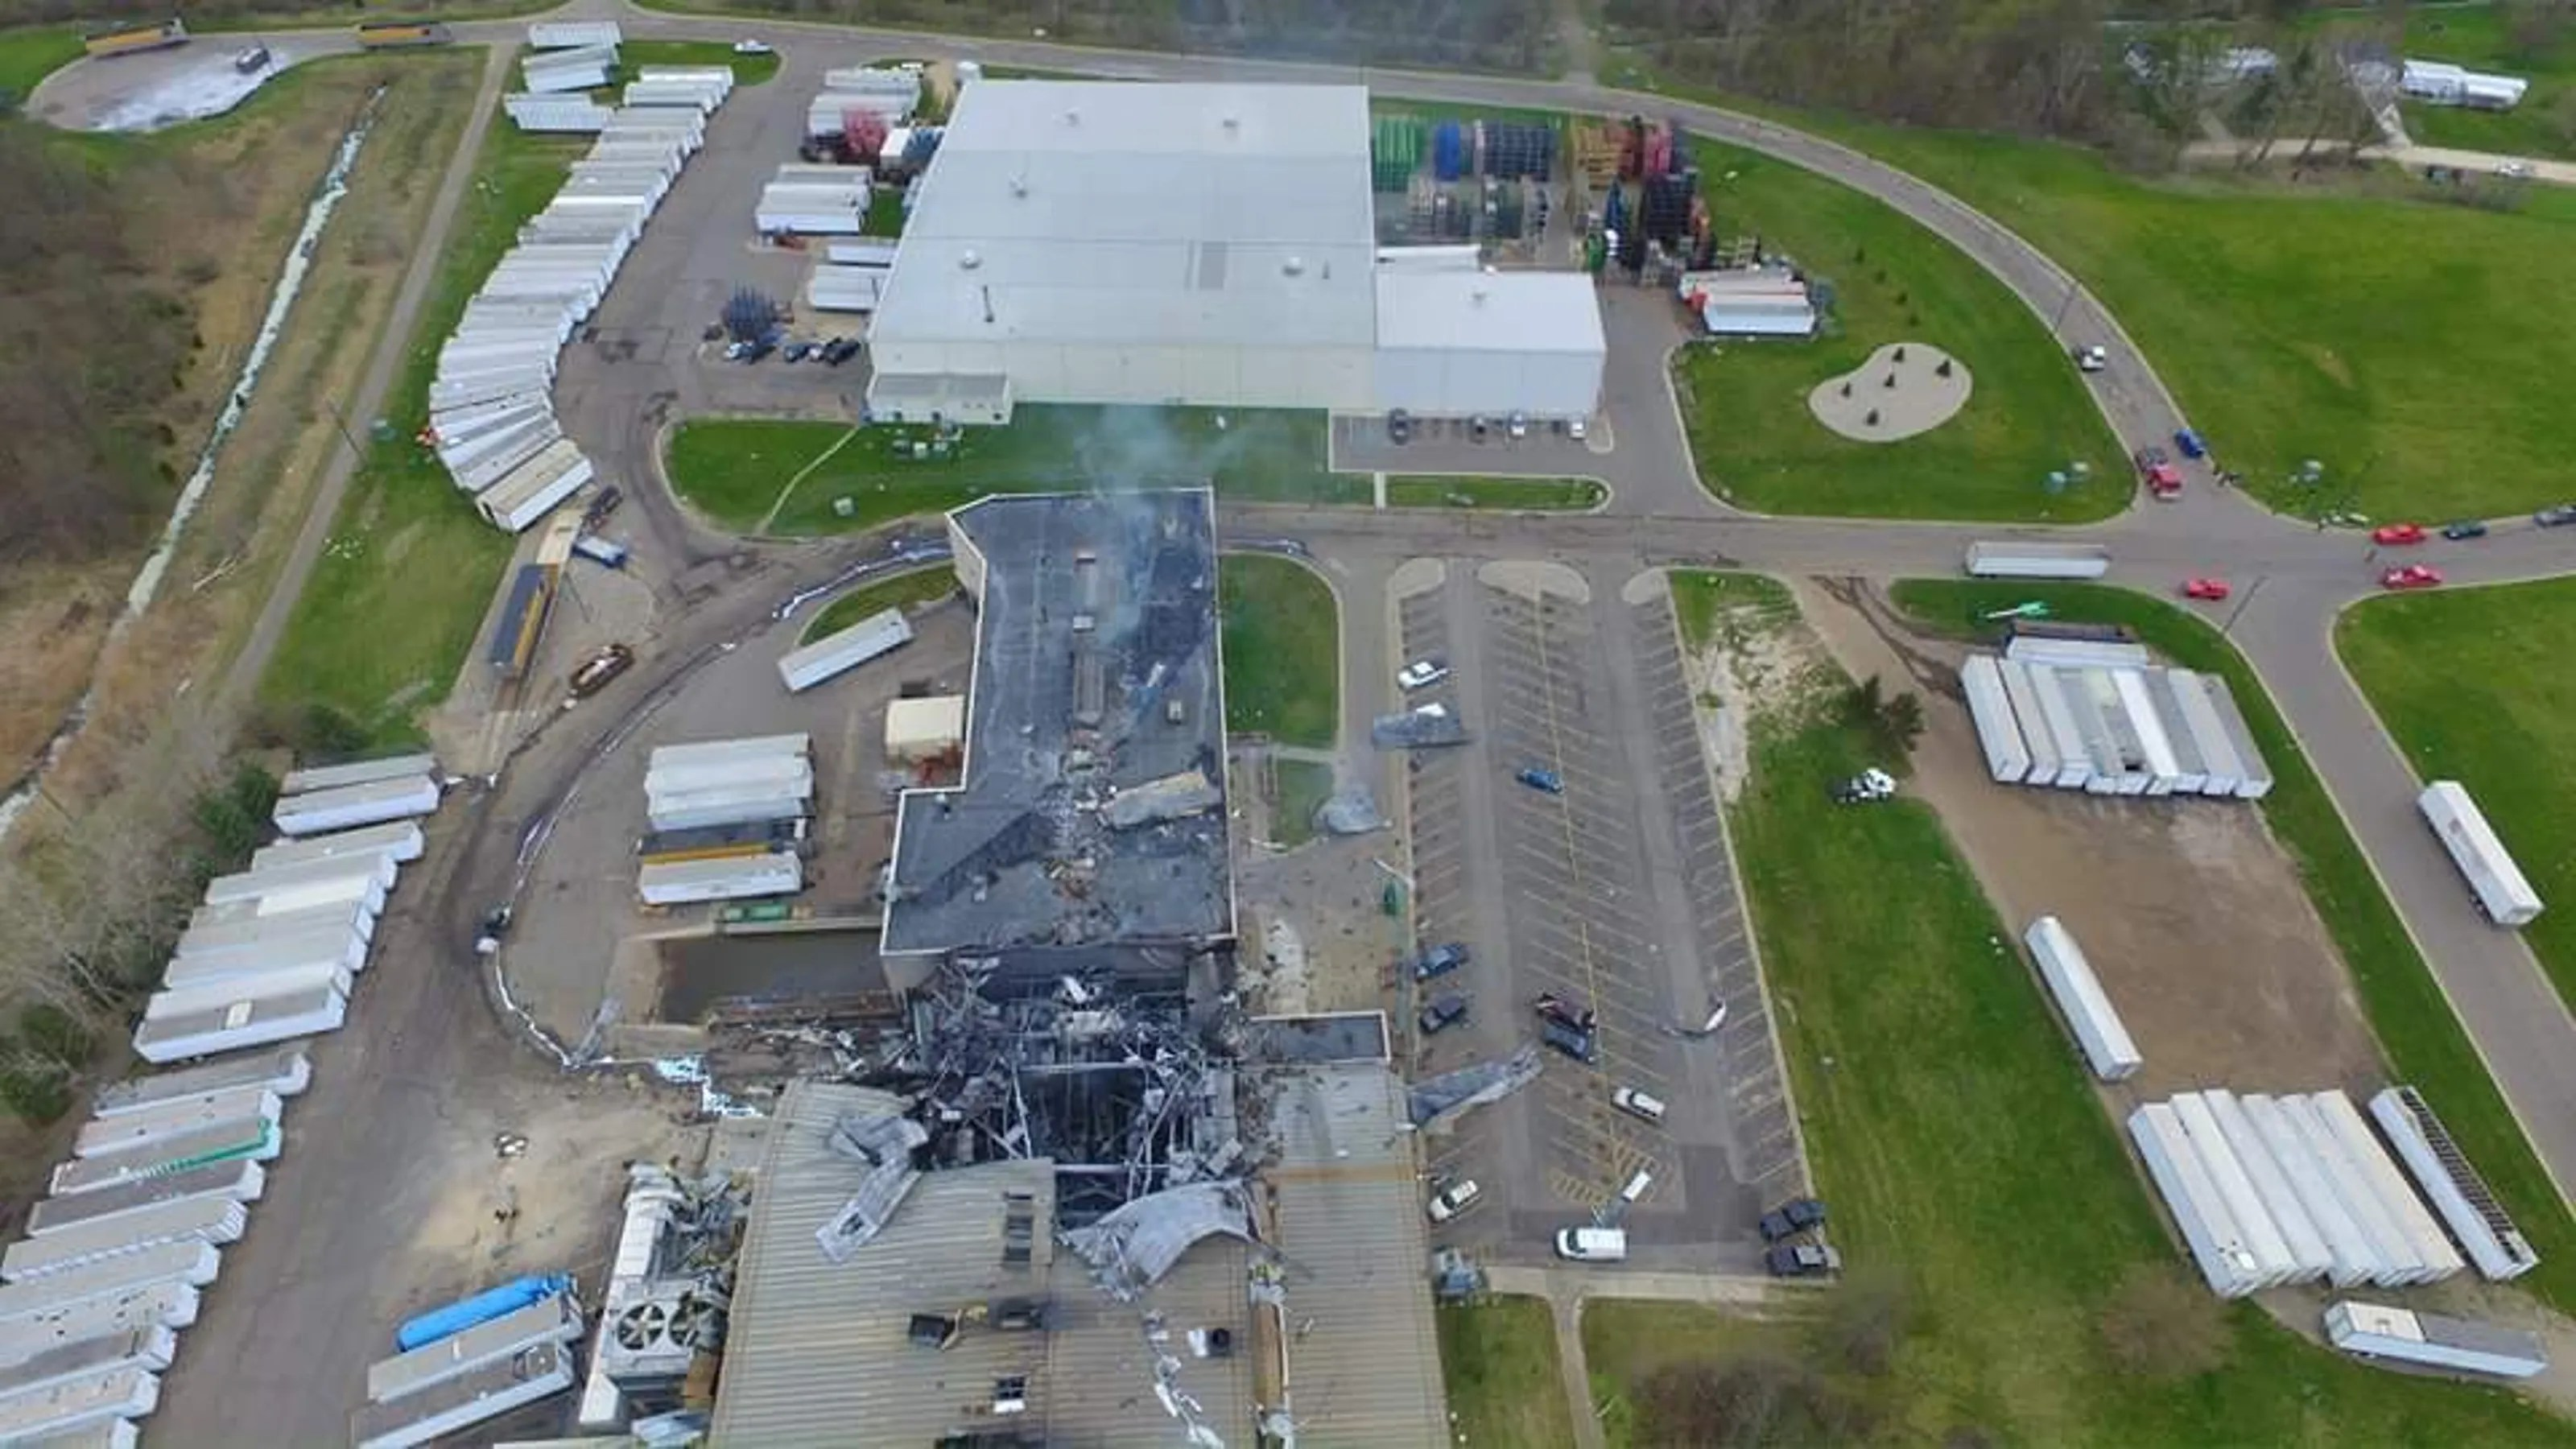 Watch Drone footage of the Meridian Magnesium fire and damage